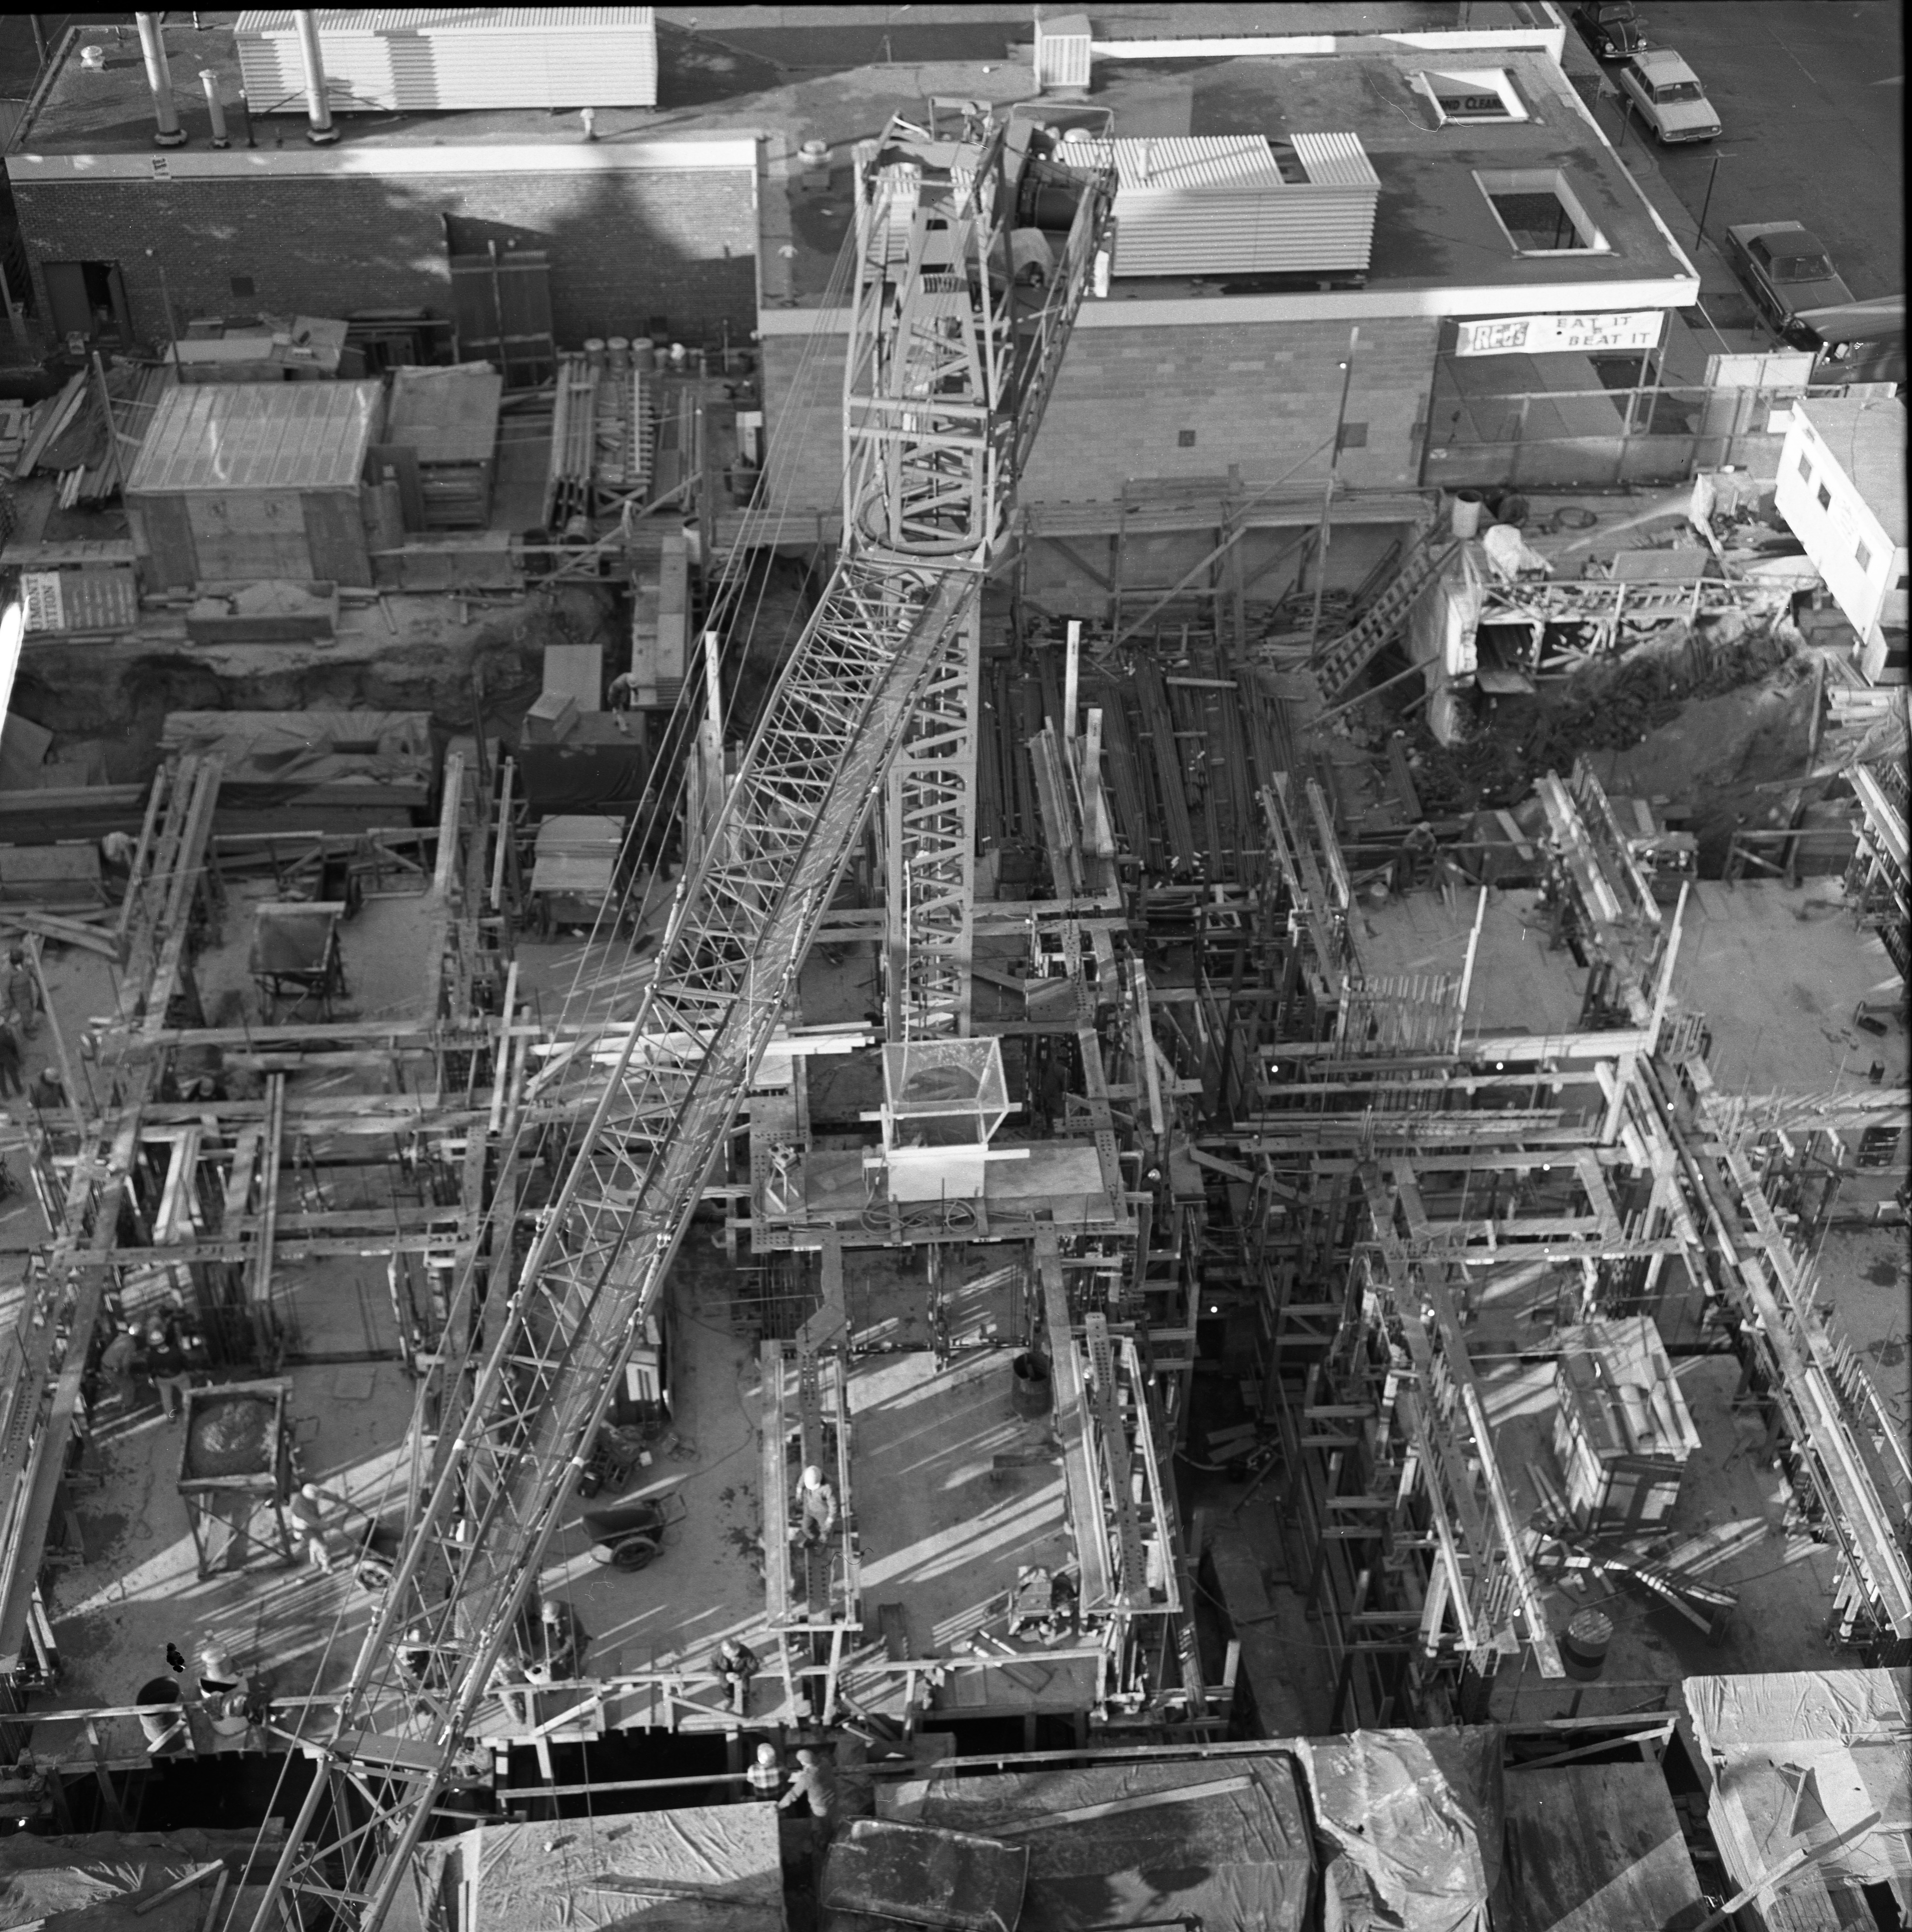 Aerial Shot From Top Of Maynard House Looking Down On Tower Plaza Construction, October 22, 1966 image